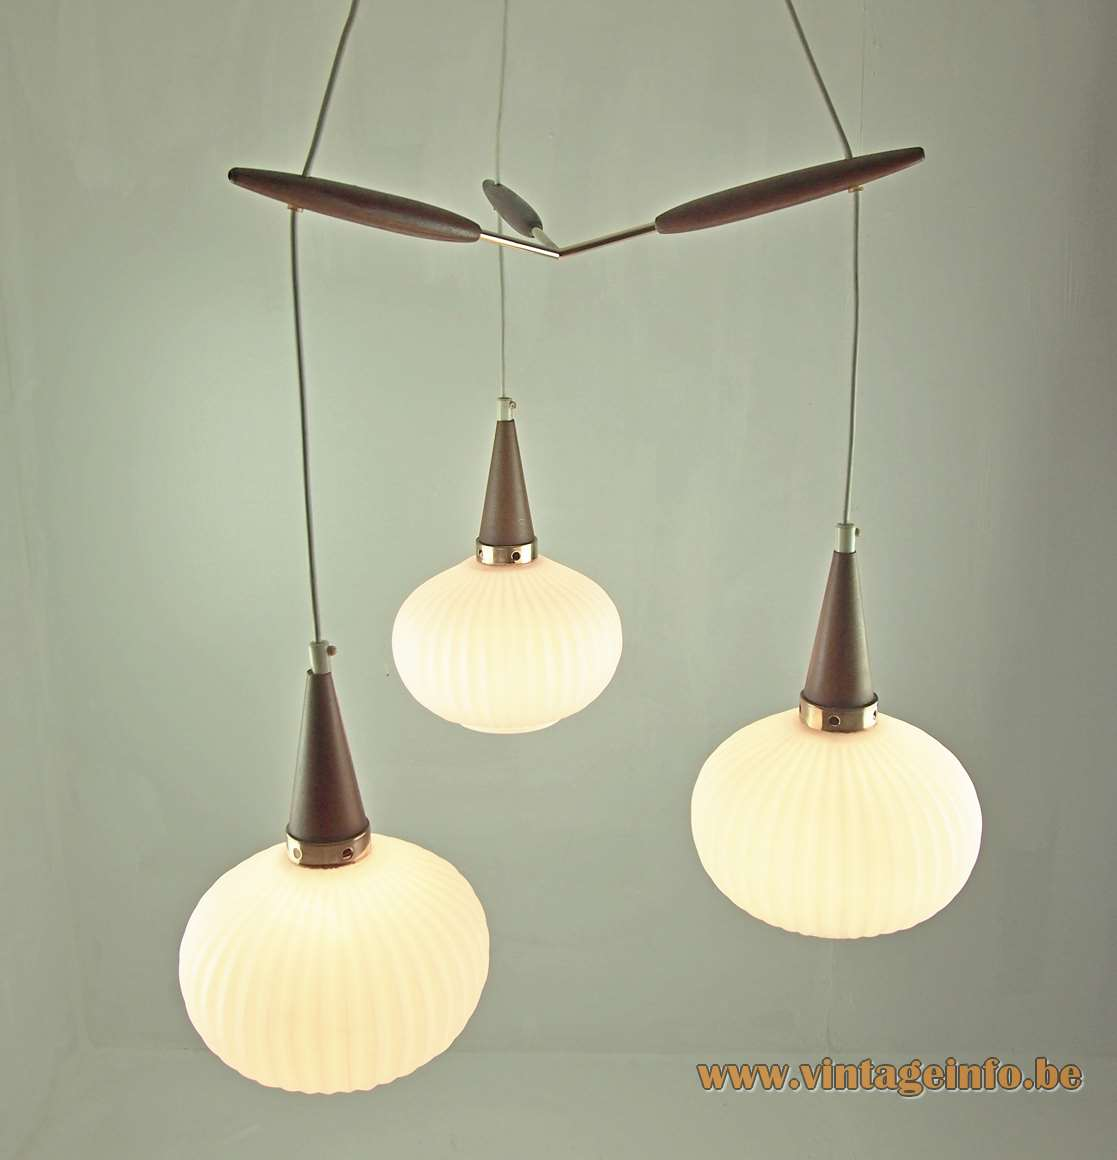 1950s cascade pendant chandelier ribbed opal glass lampshades wood conical rods 1960s Massive Belgium Louis Kalff